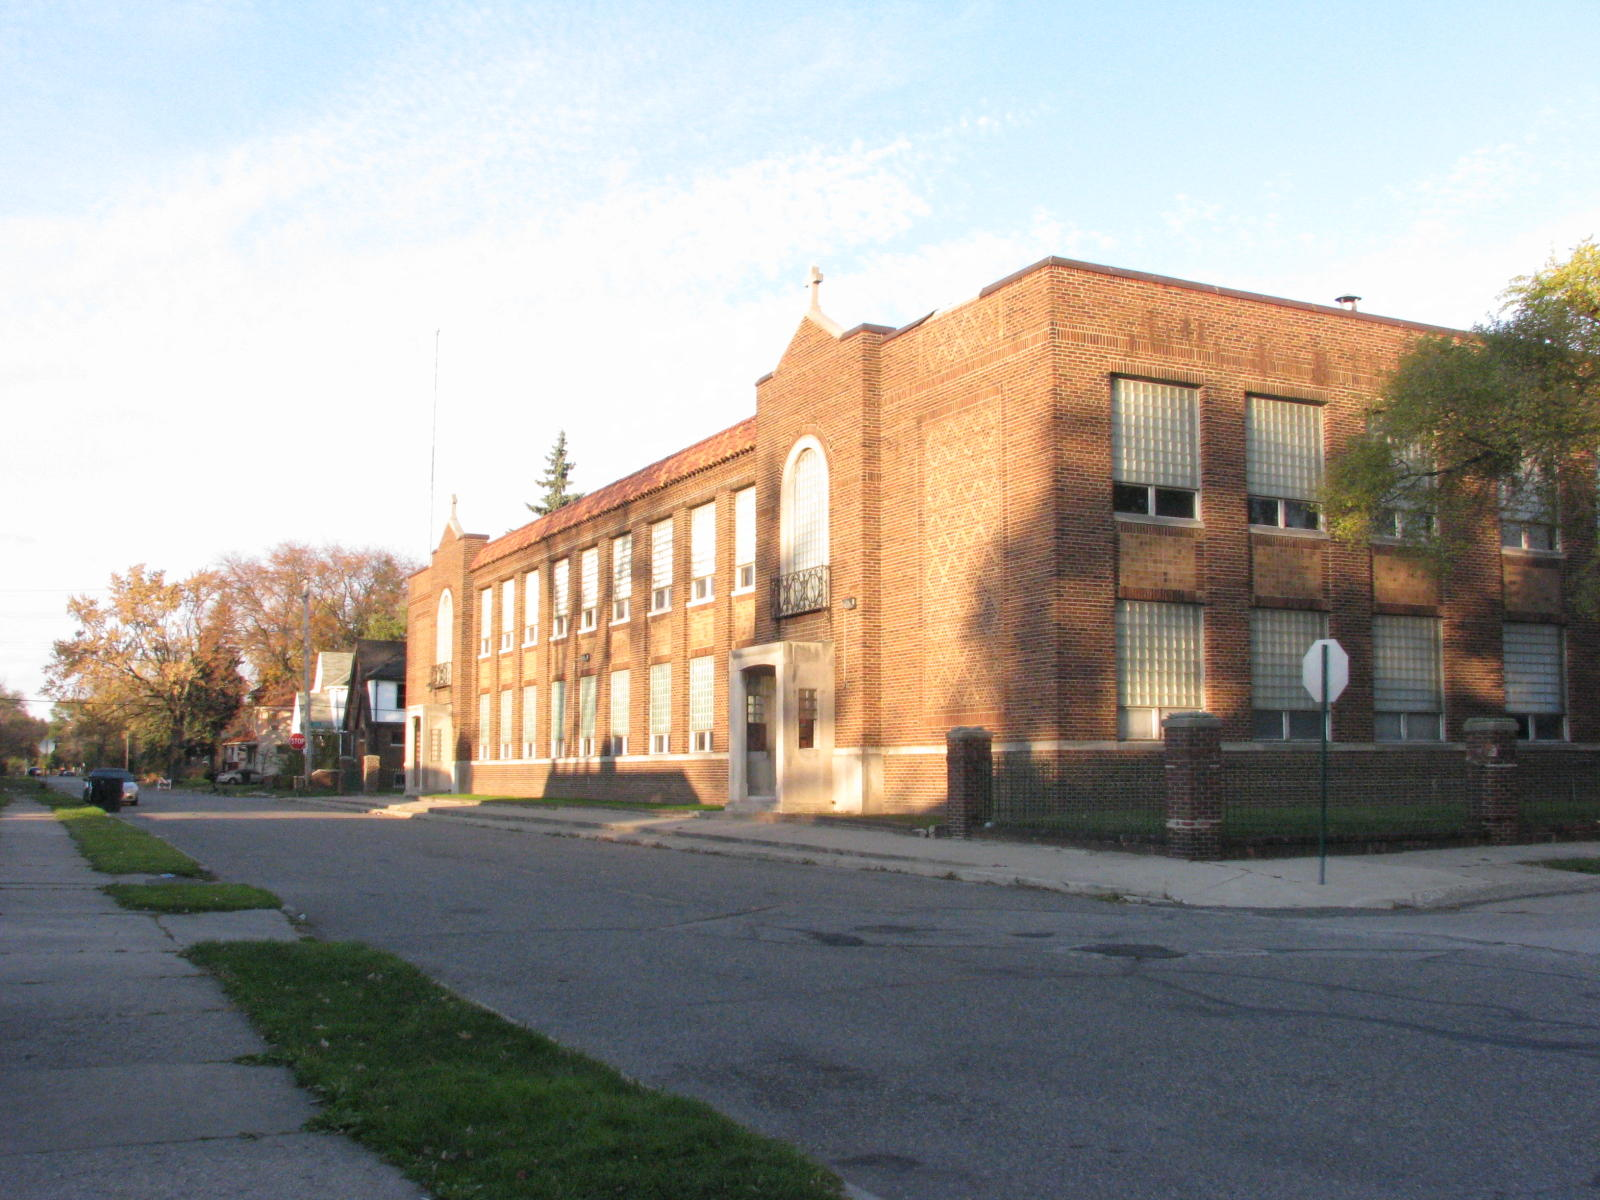 Archdiocese sells vacant school building for affordable for Building an affordable home